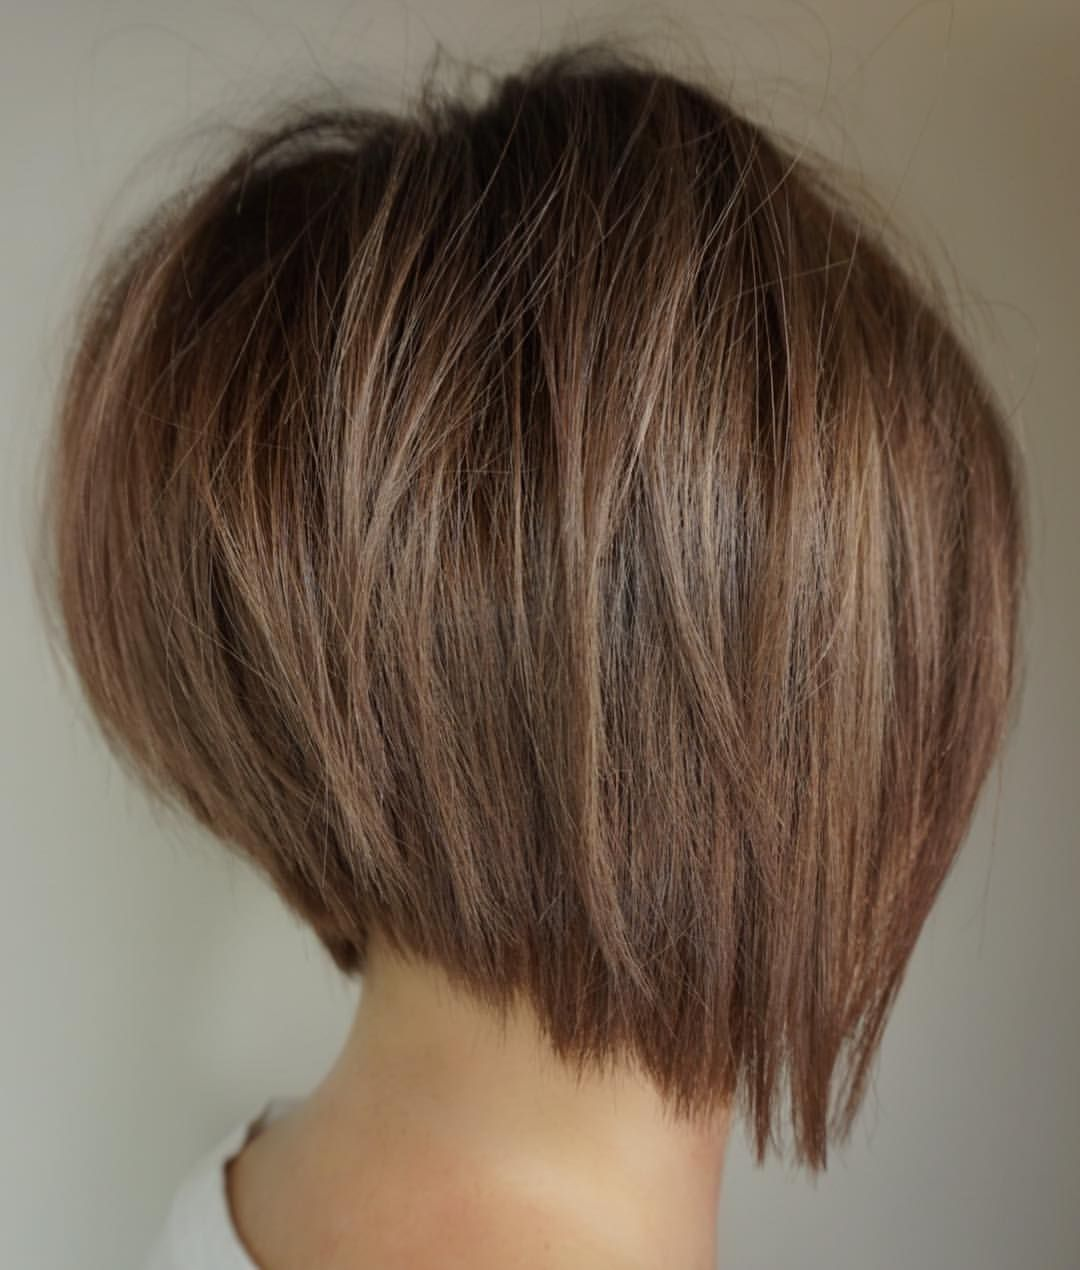 Short Hair Day Continues With This Lovely Textured Out Undercut With A Fun Design I M Still On Short Hair With Layers Bob Hairstyles For Fine Hair Hair Styles